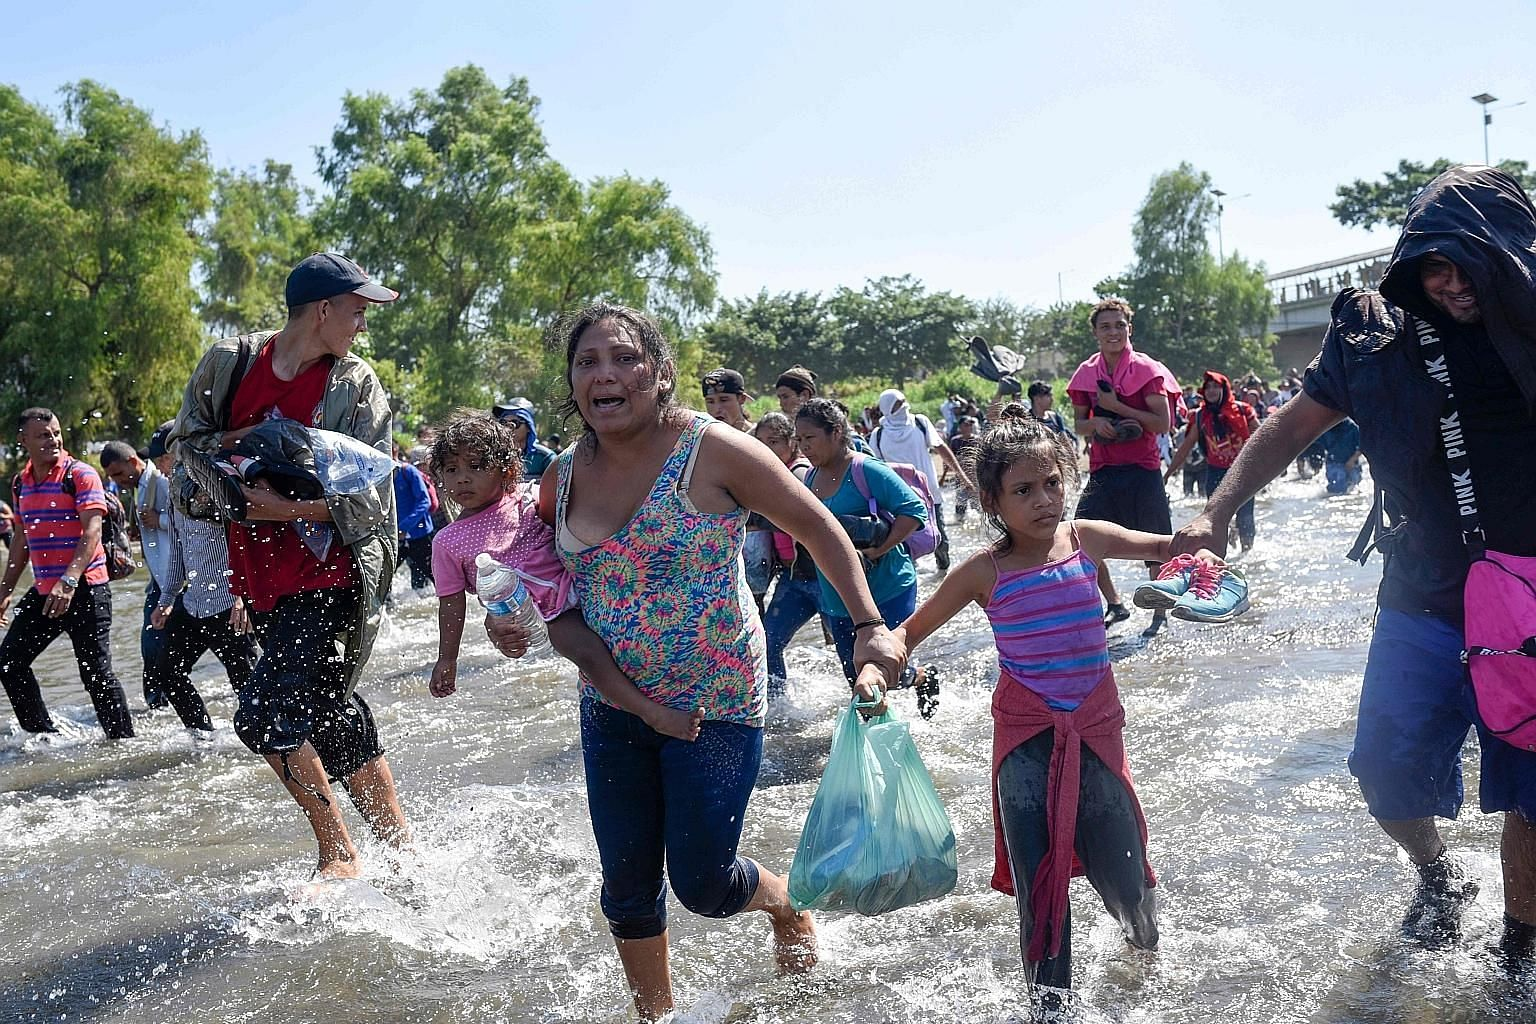 Central American migrants - mostly Hondurans - crossing the Suchiate River between Guatemala and Mexico on Monday. They were part of a group of several thousand people that had left Honduras last week.